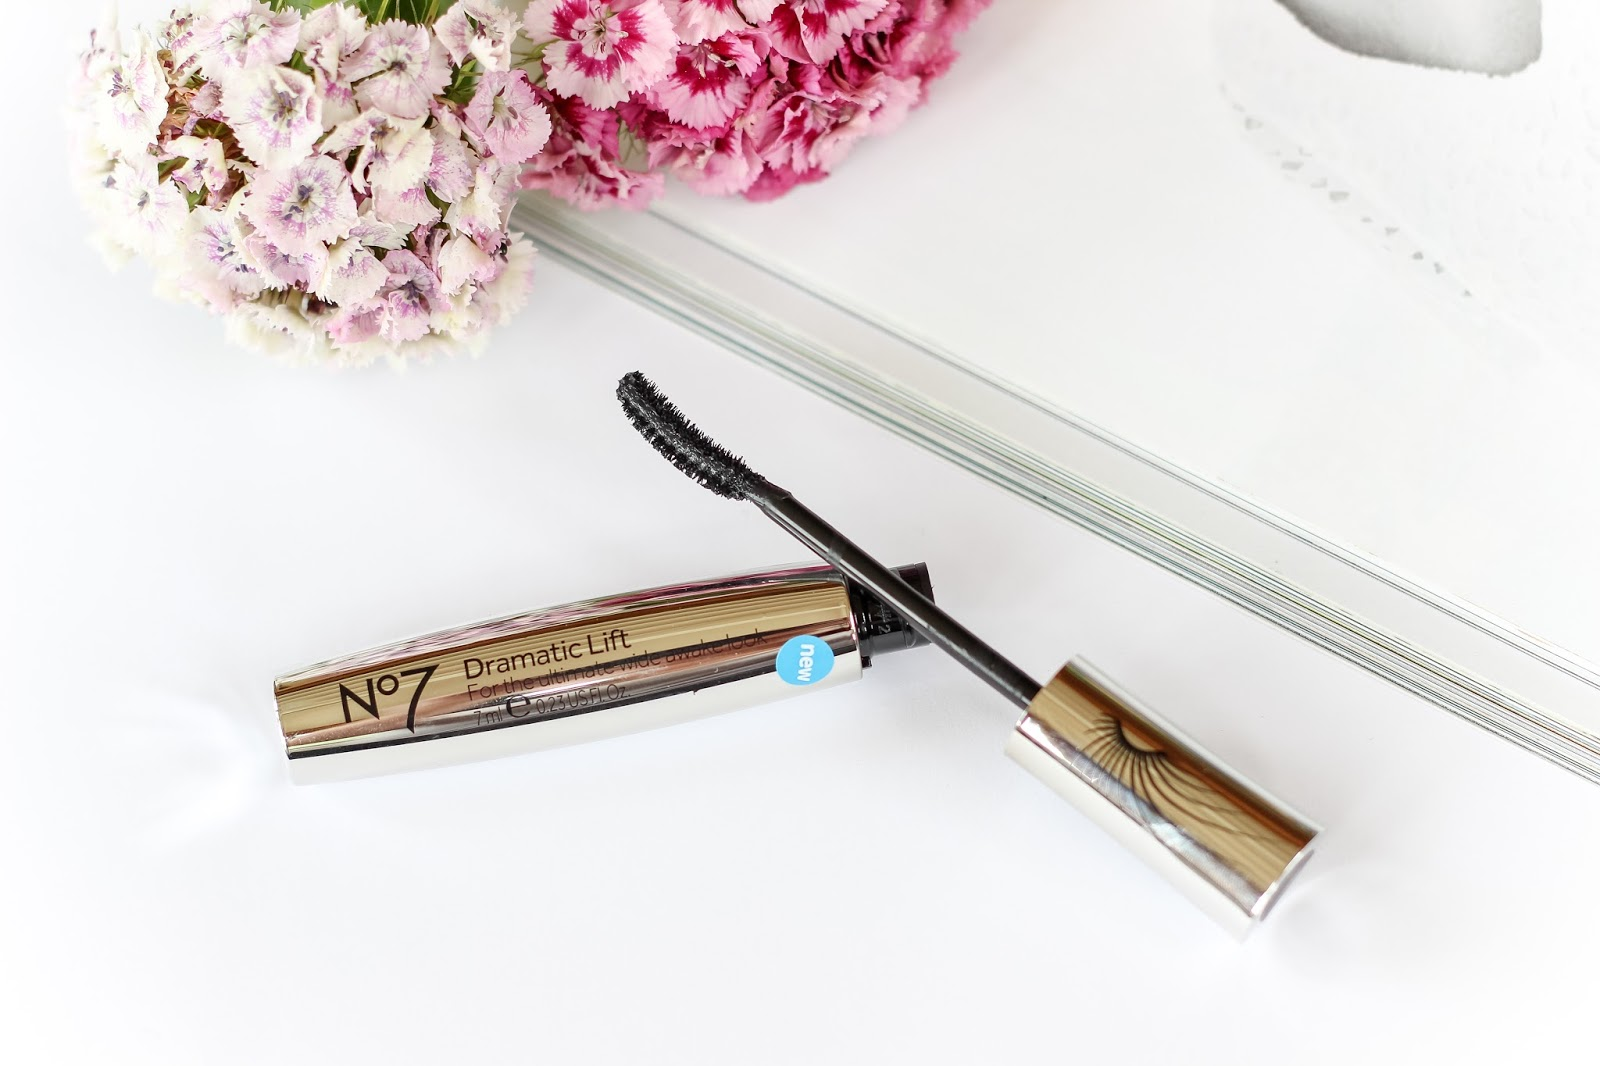 No7 Dramatic Lift Mascara Review